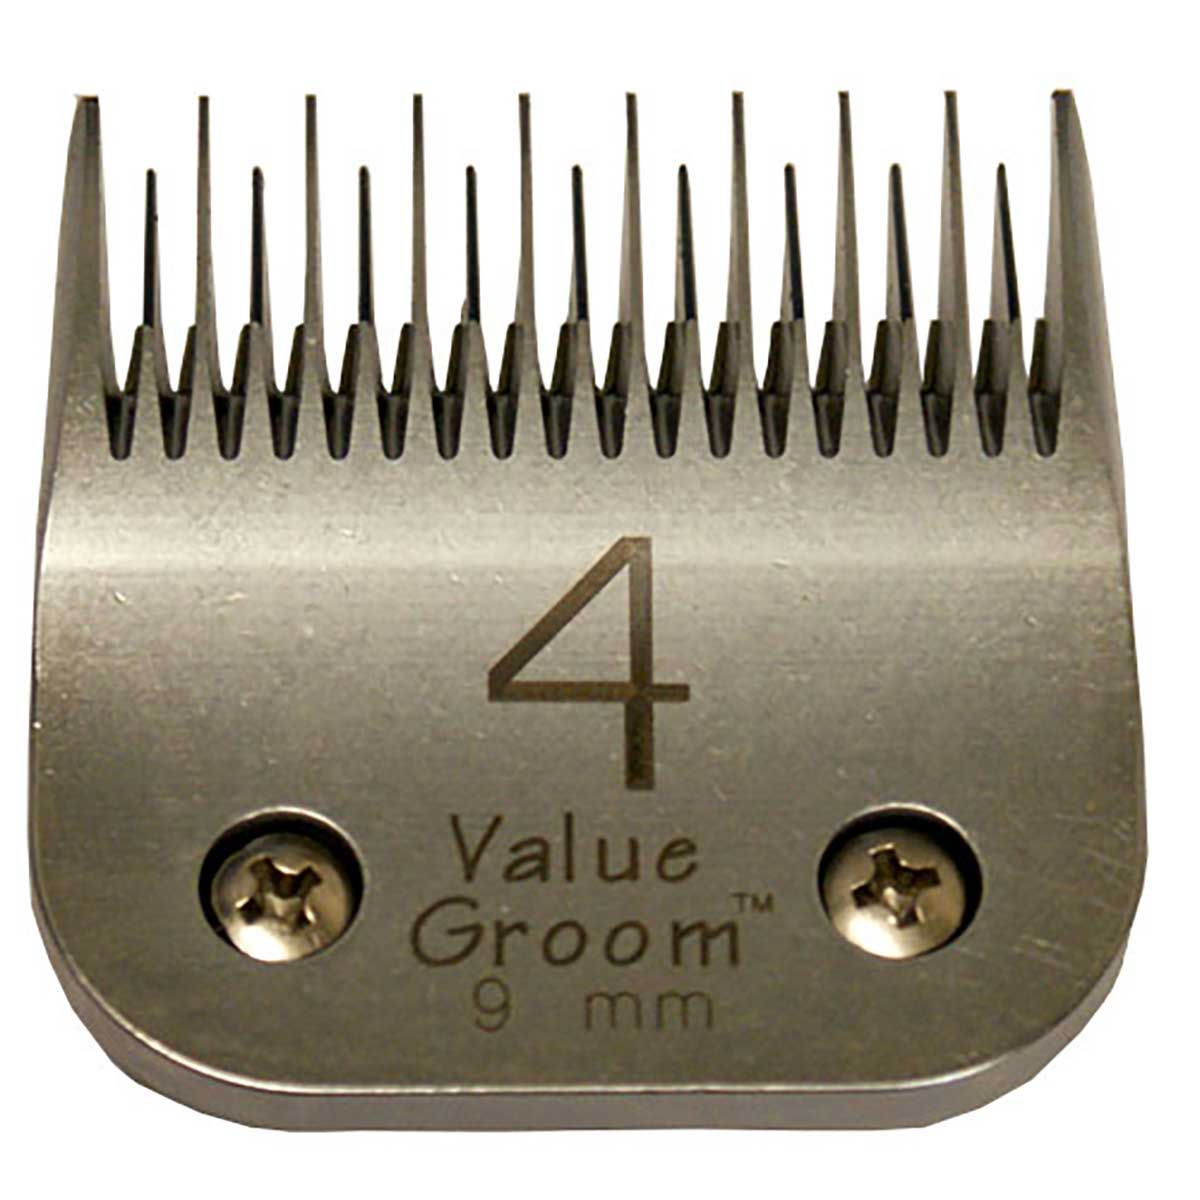 "Value Groom #4 Conventional Blade Skip Tooth 3/8"" 9 mm -"